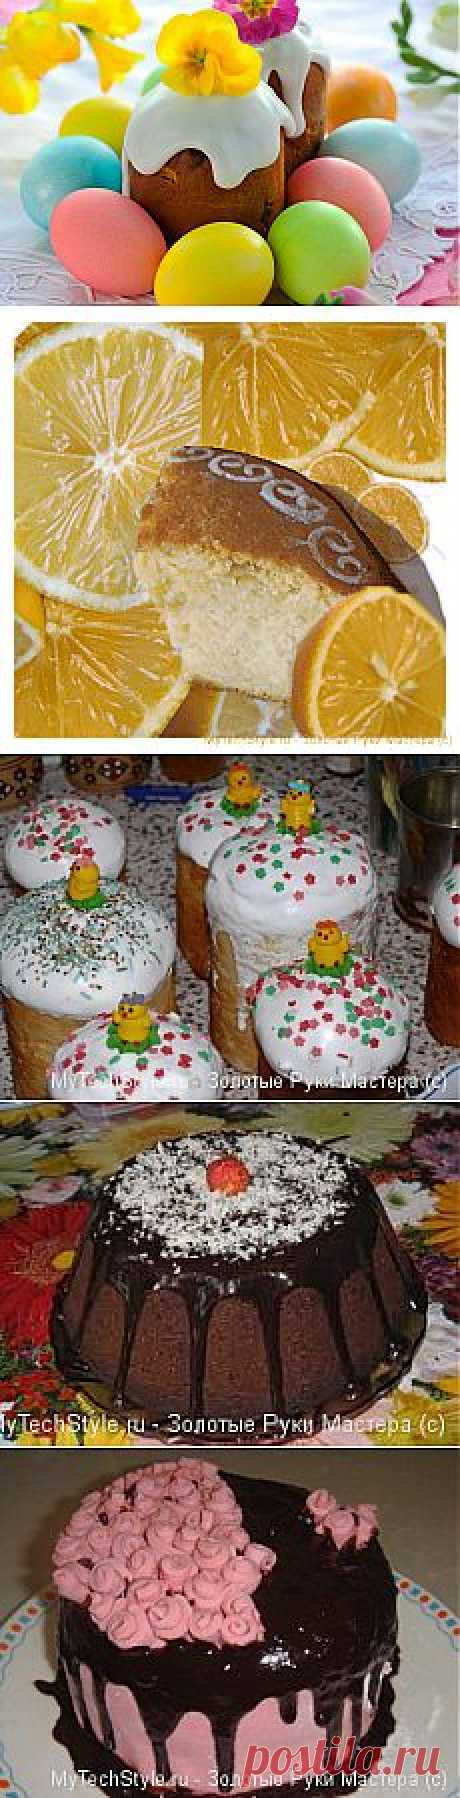 NECESSARY COUNCILS FOR BAKING OF EASTER CAKES! SECRETS AND RECIPES OF PREPARATION OF GLAZE AND FONDANT FOR EASTER CAKES!!!.